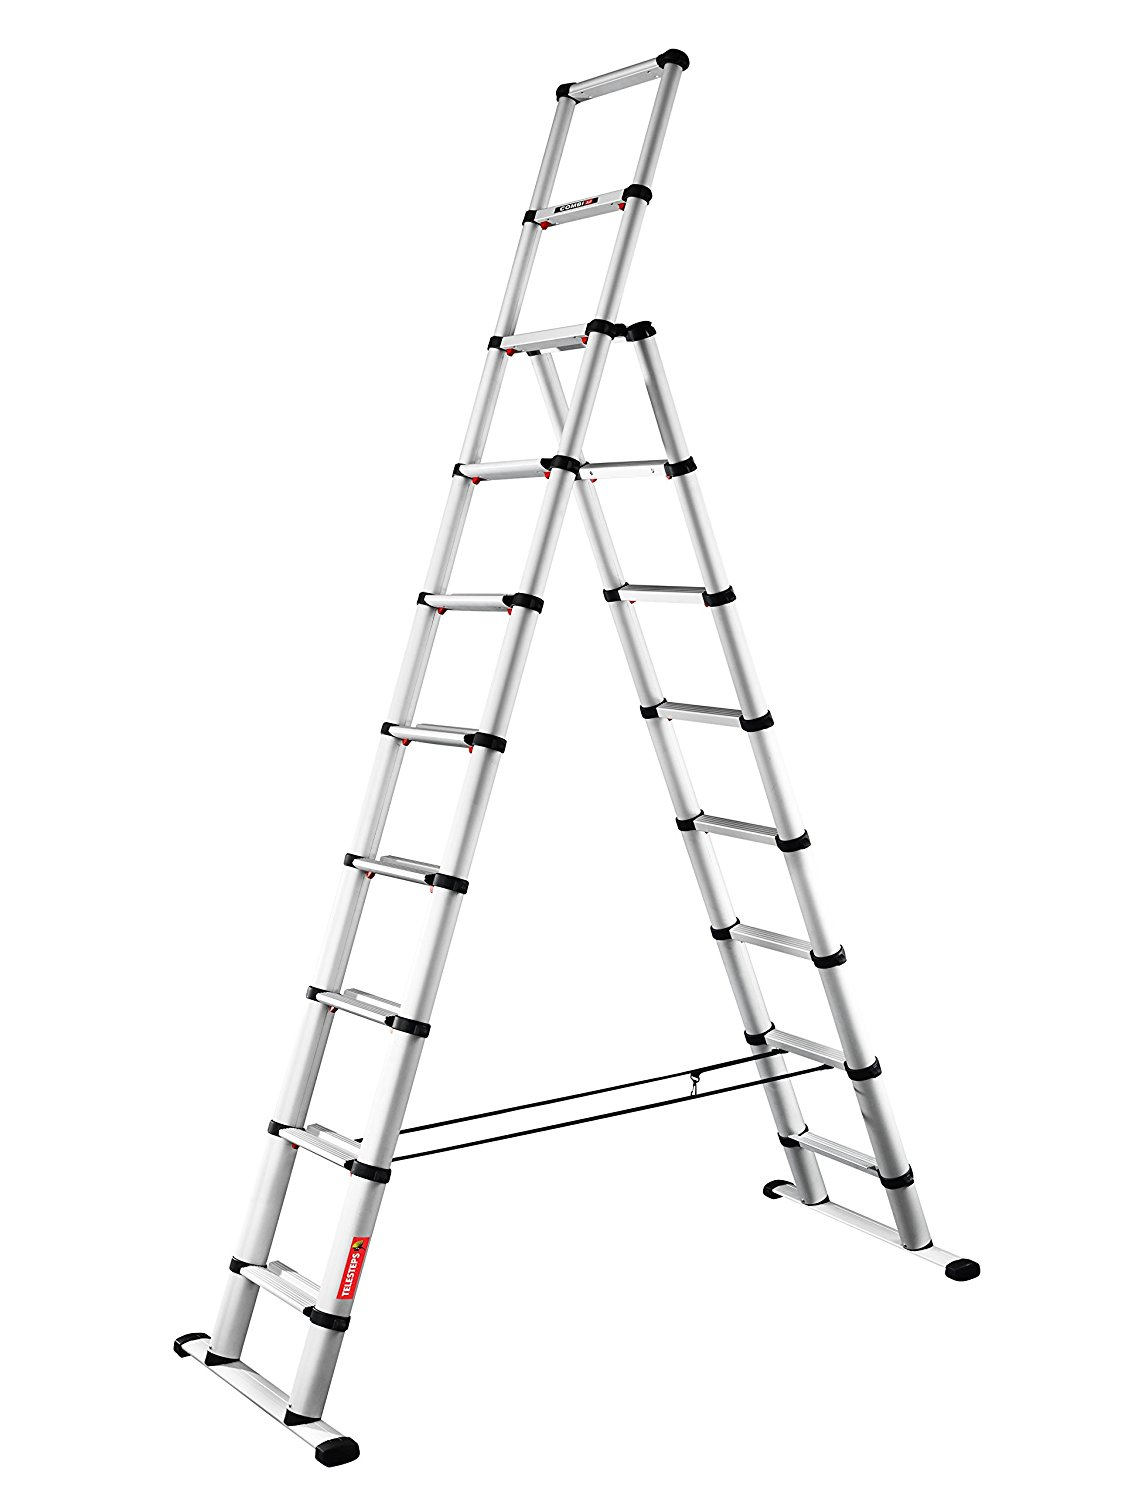 Ladder line drawing at getdrawings free for personal use